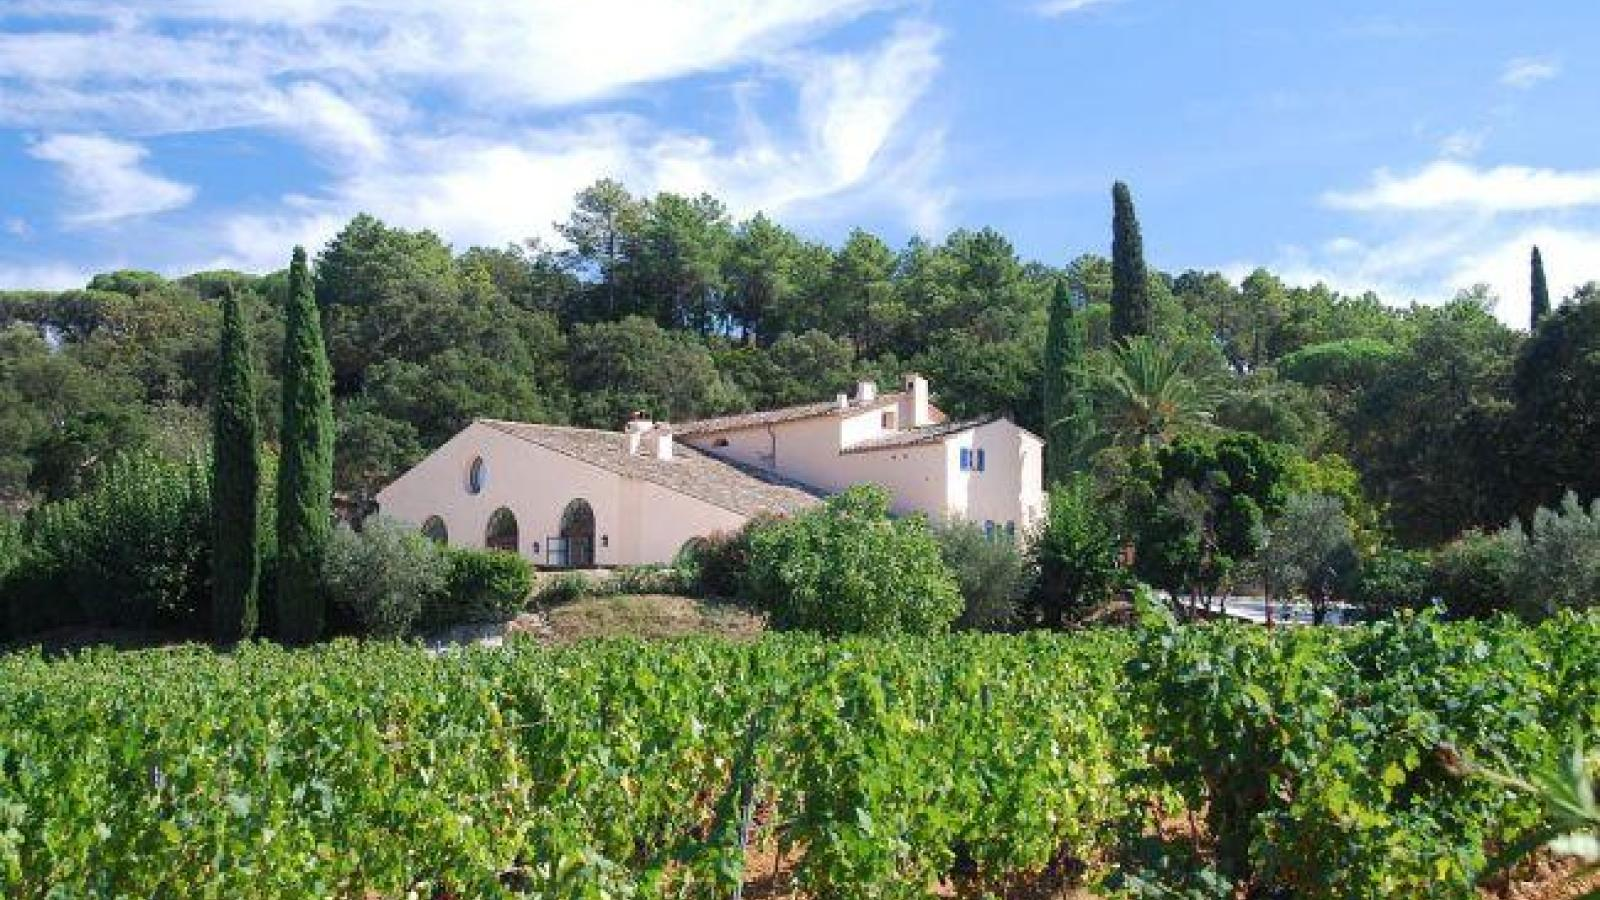 The vineyards of Saint-Tropez , flagship of the French Riviera